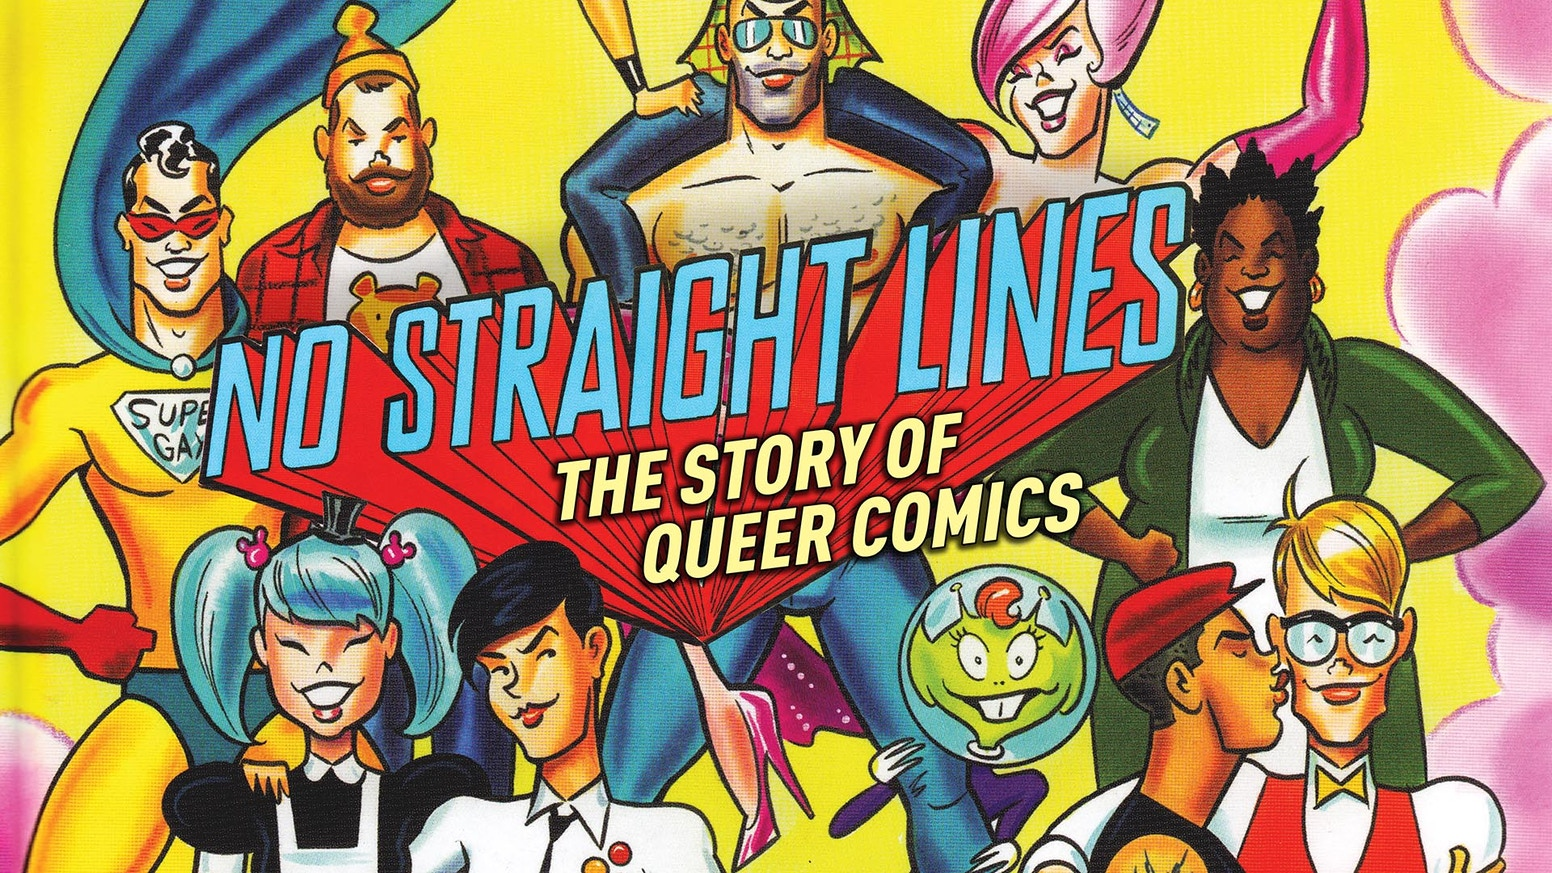 From the start of queer comics in the underground scene to Alison Bechdel & mainstream acceptance as told in a documentary film.